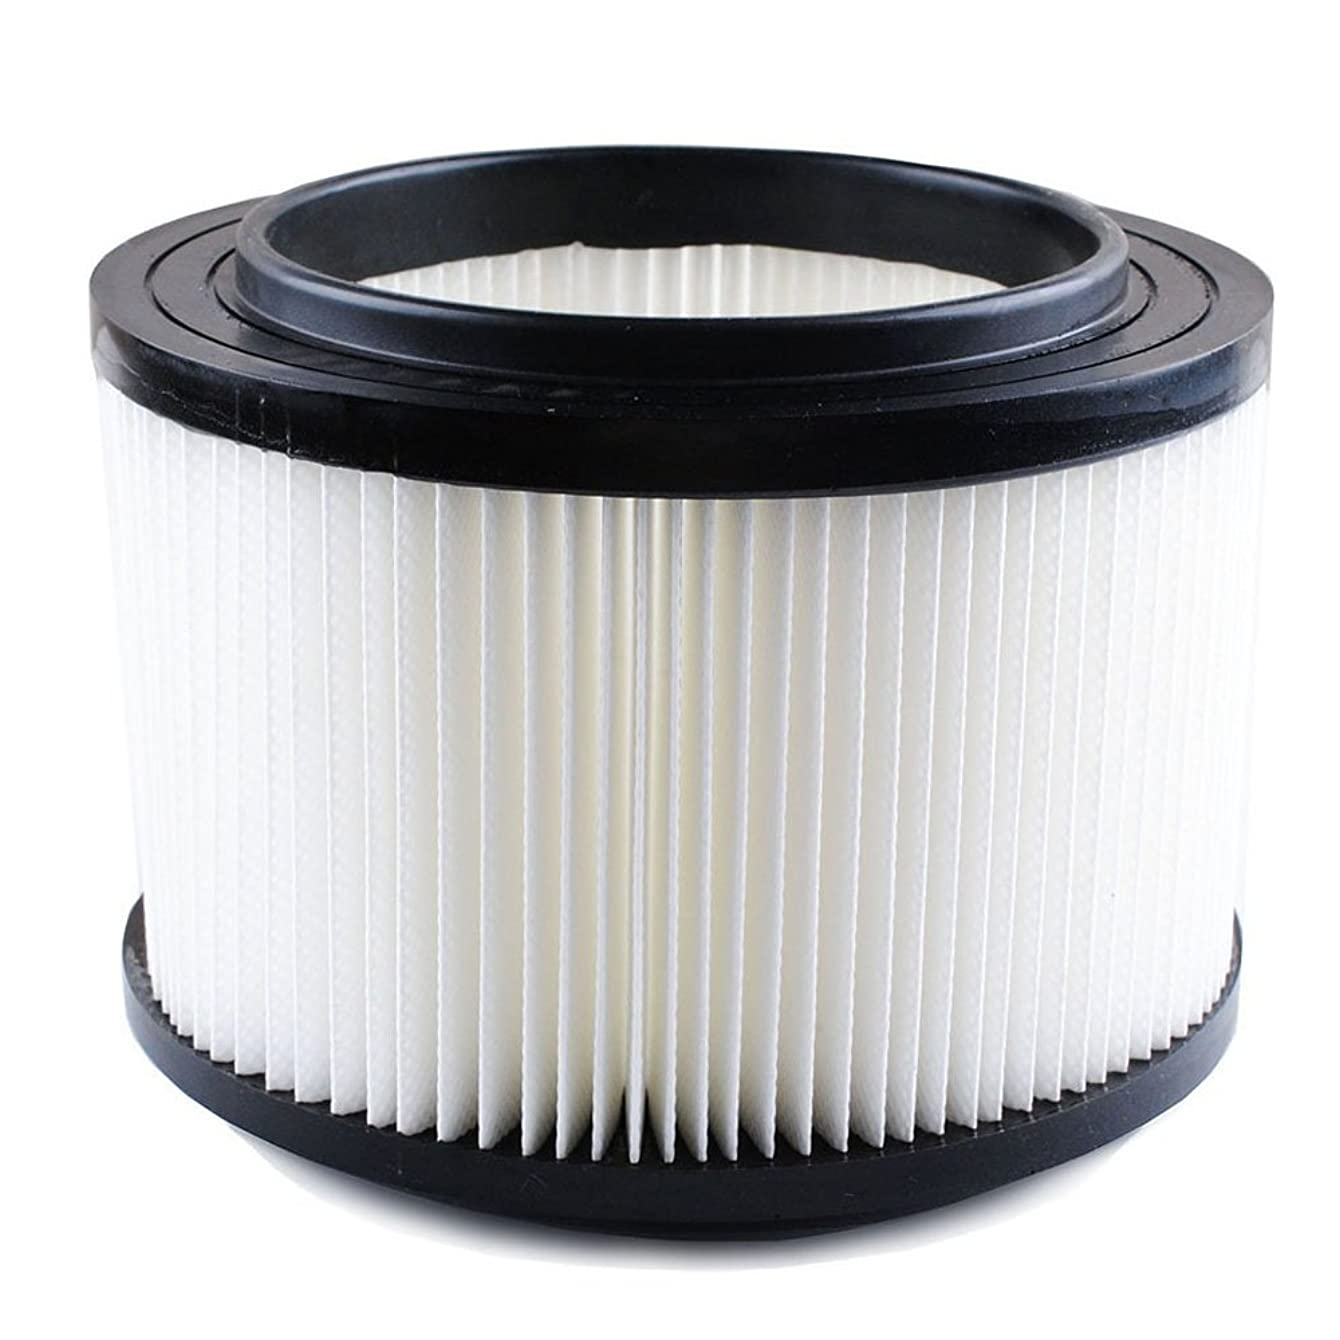 Wadoy 17810 Filter Compatible with Craftsman Shop Vac/917810 Wet Dry Vacuum Filter Fits 3 & 4 Gallon